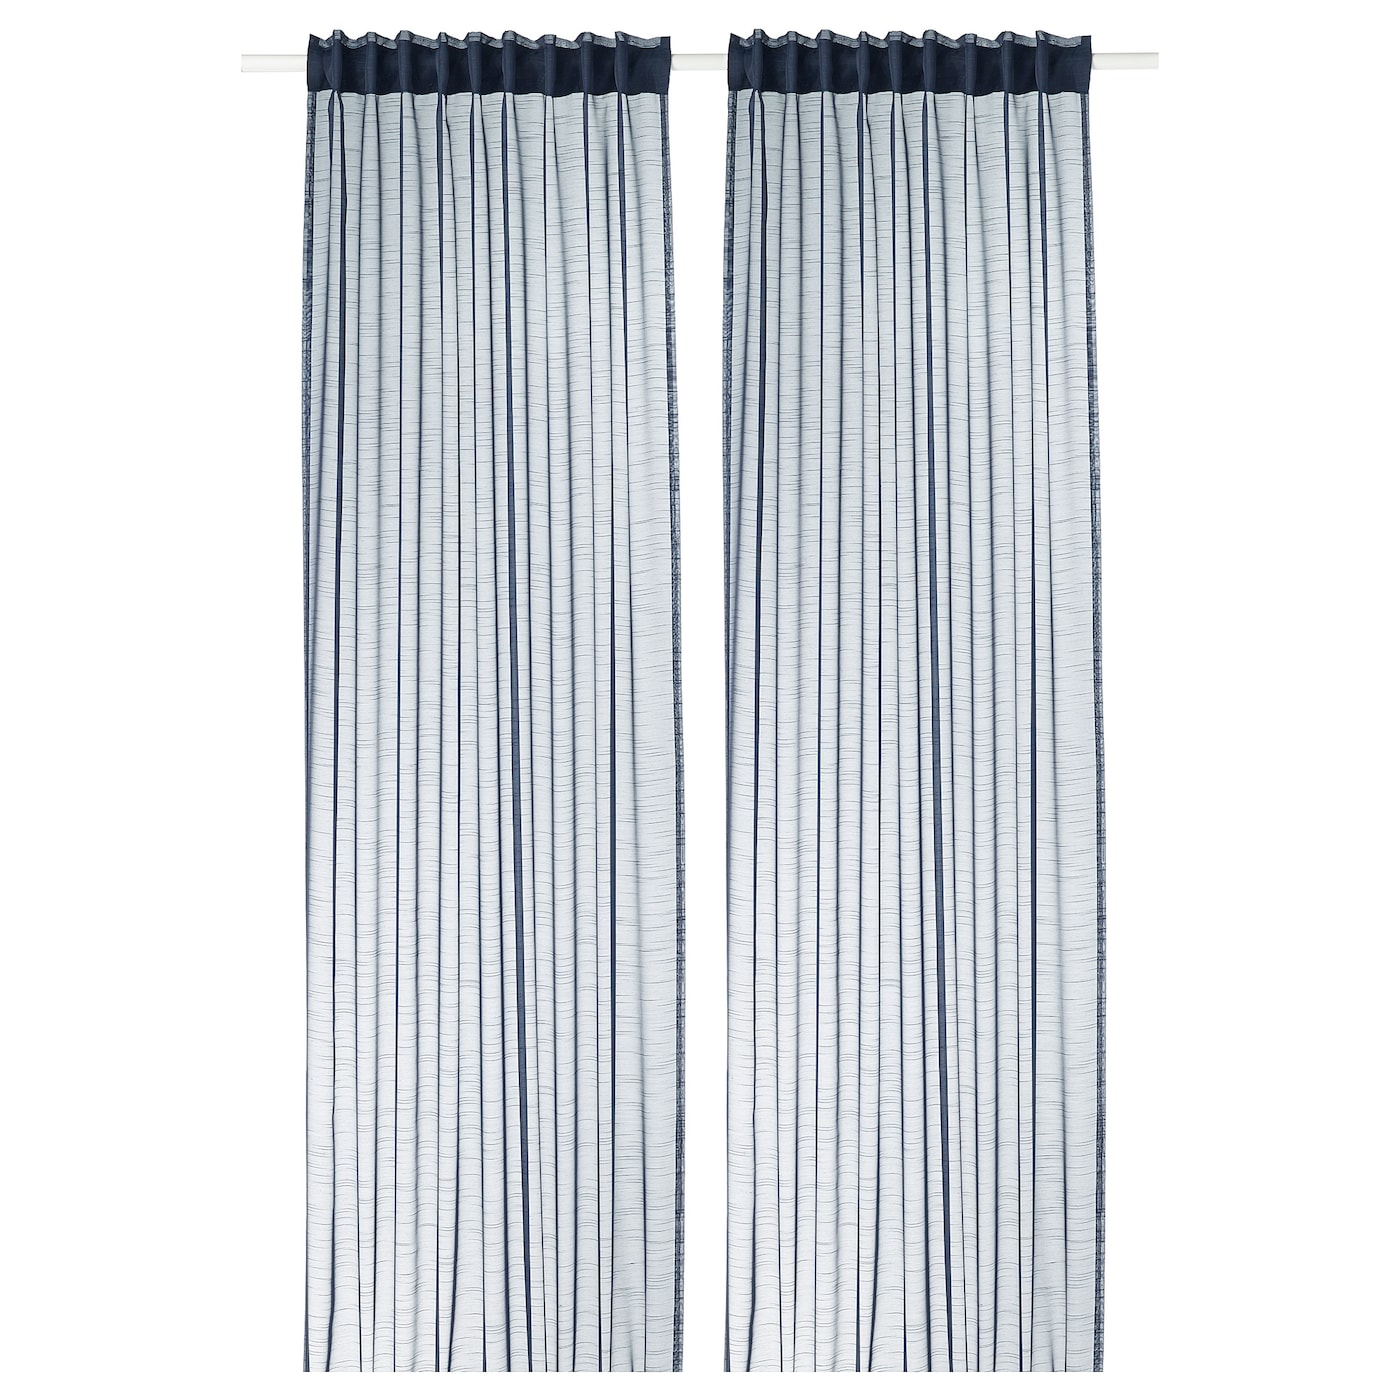 Schottis pleated blind white 90 x 190 cm ikea for Pleated shades ikea